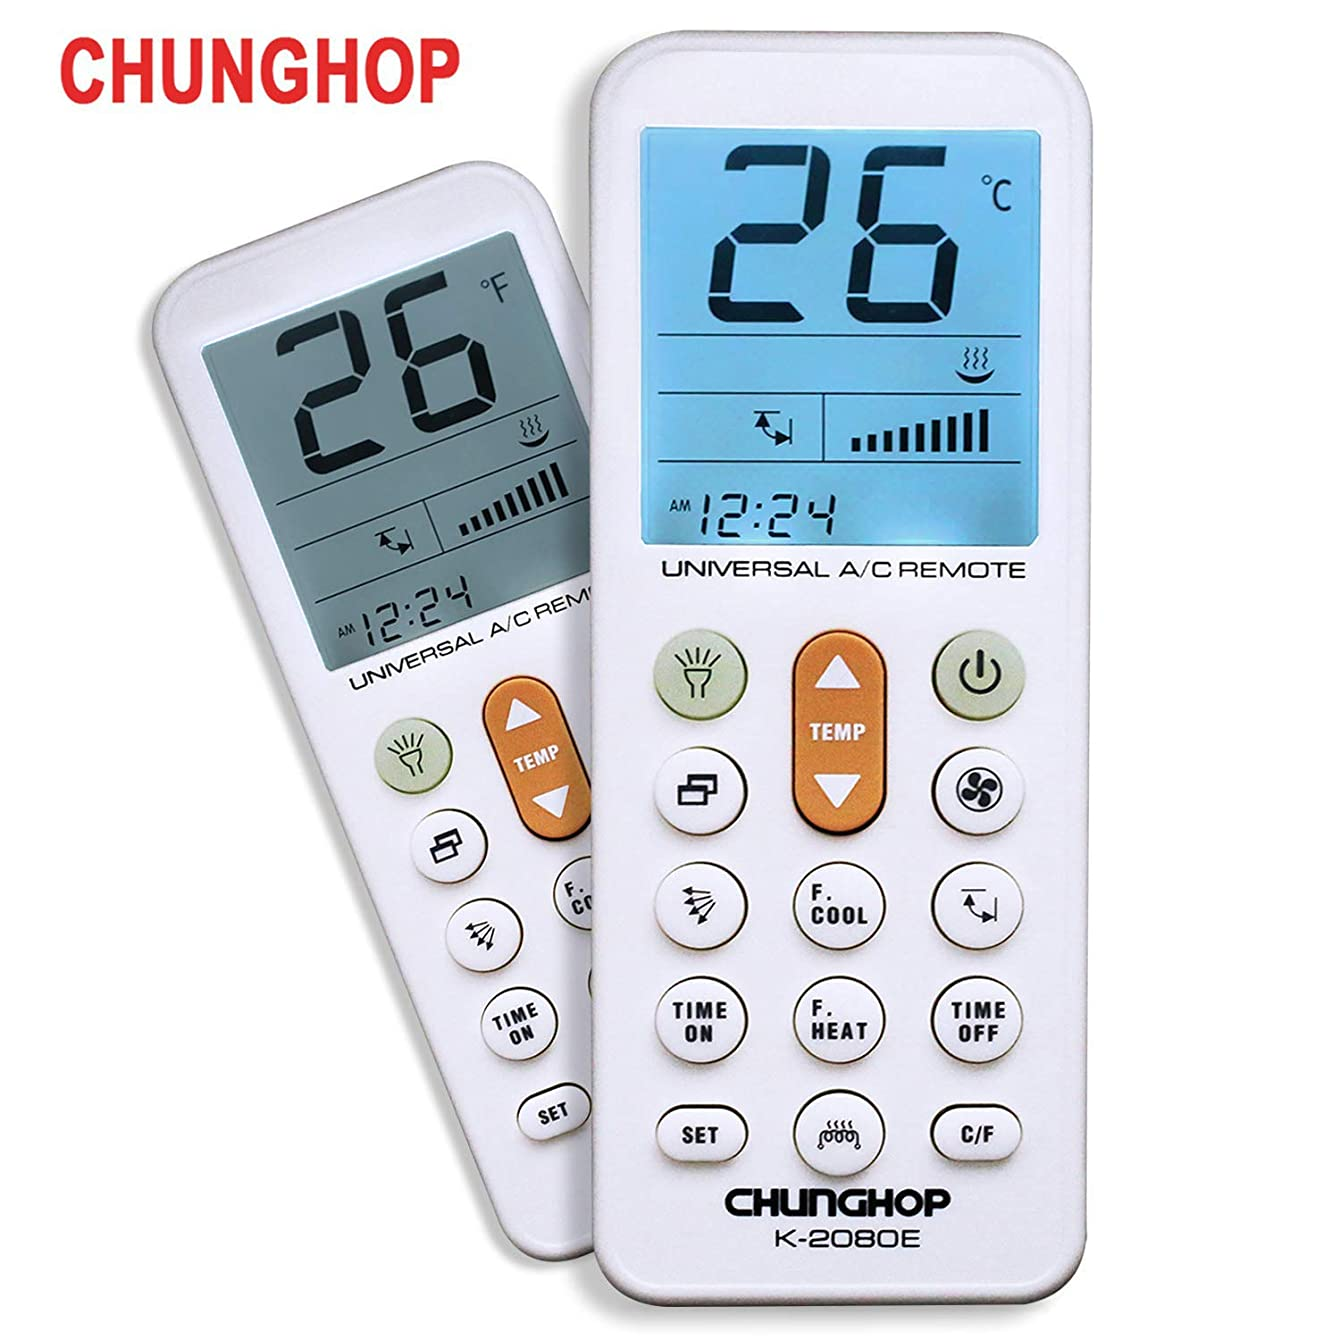 CHUNGHOP Universal Air Conditioner Remote Control for Daikin, Hitachi, Mitsubishi, Carrier, Panasonic, LG, Sharp, Haier, Gree, Midea, Whirlpool, Bosch, Olympus, Toshiba, Samsung and 1000 More Brands